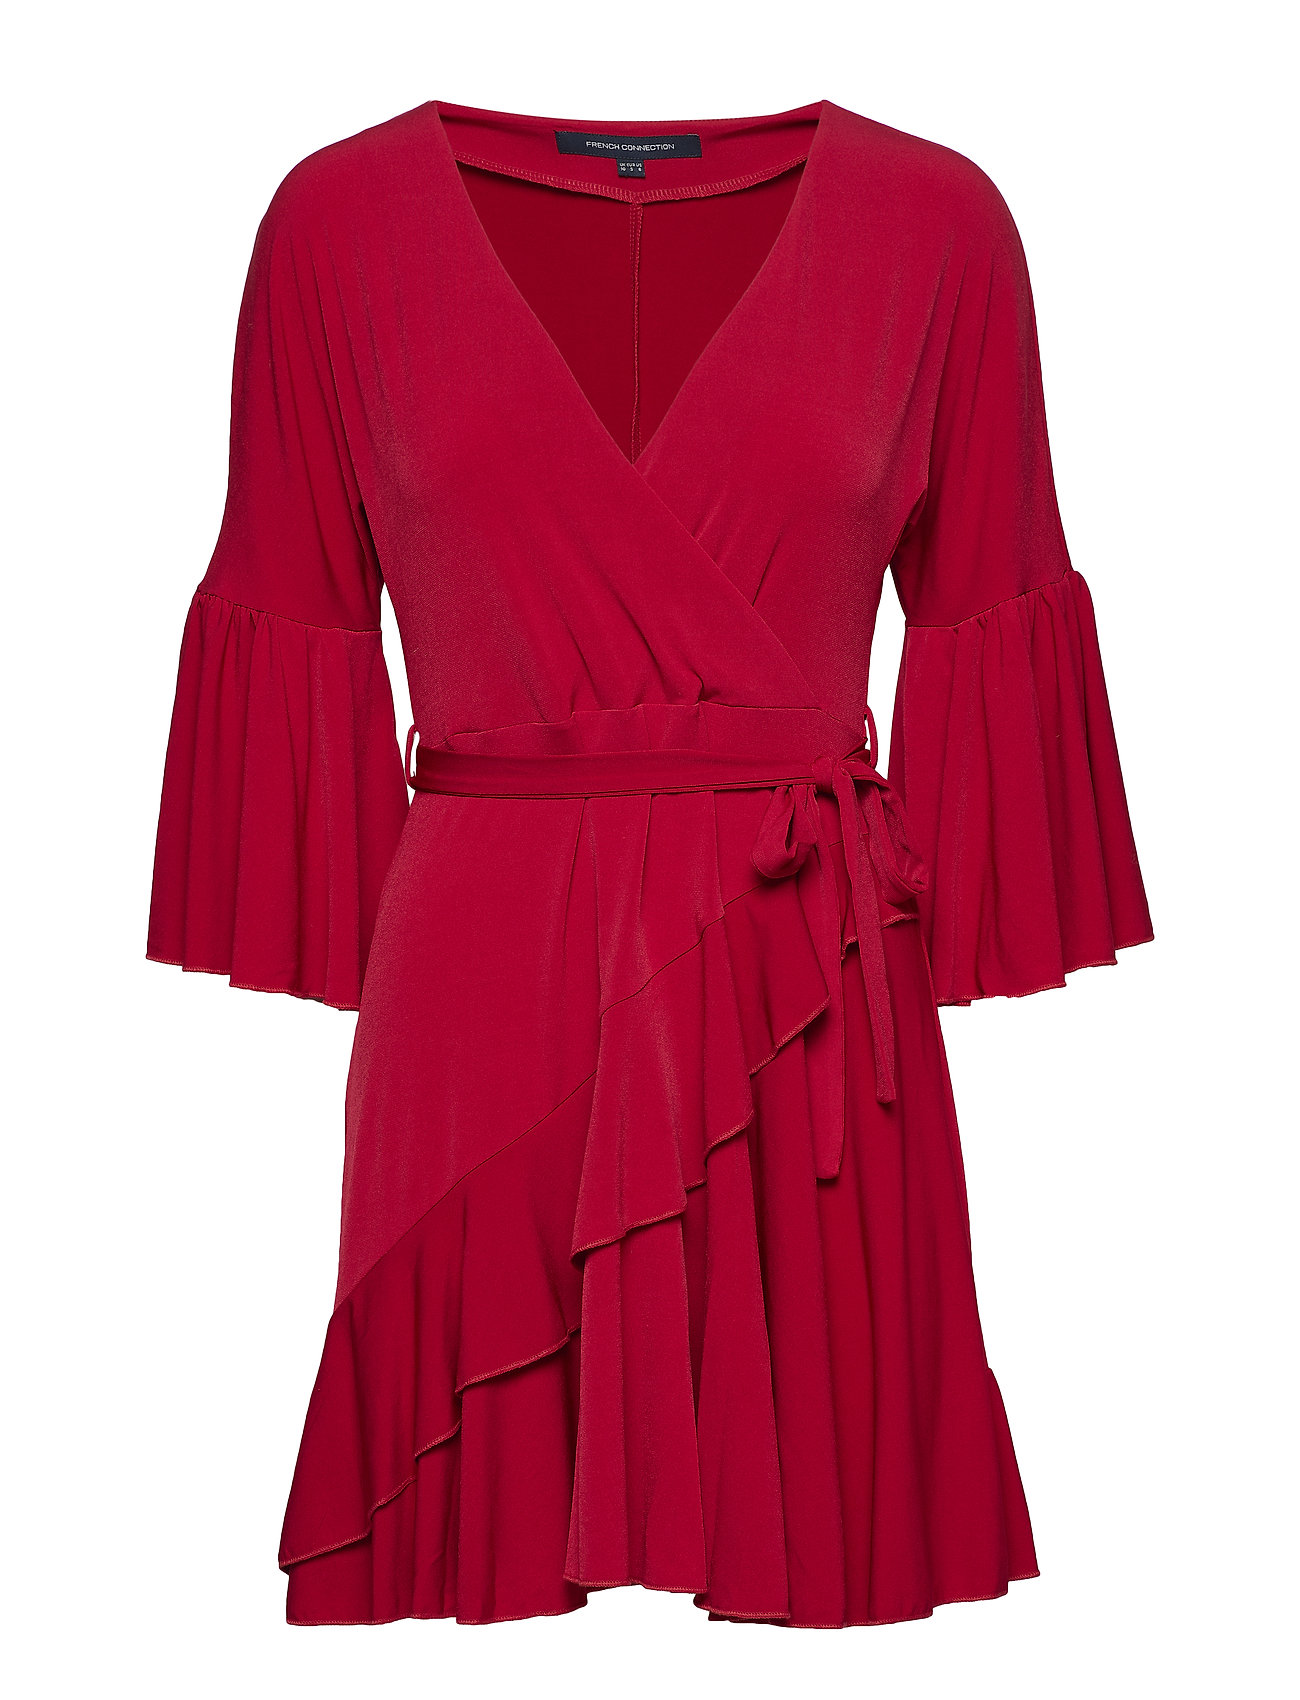 5a11f4ce6d3 Ellette Jersey Vnck Wrap Dress (Deep Framboise) (£53.04) - French ...